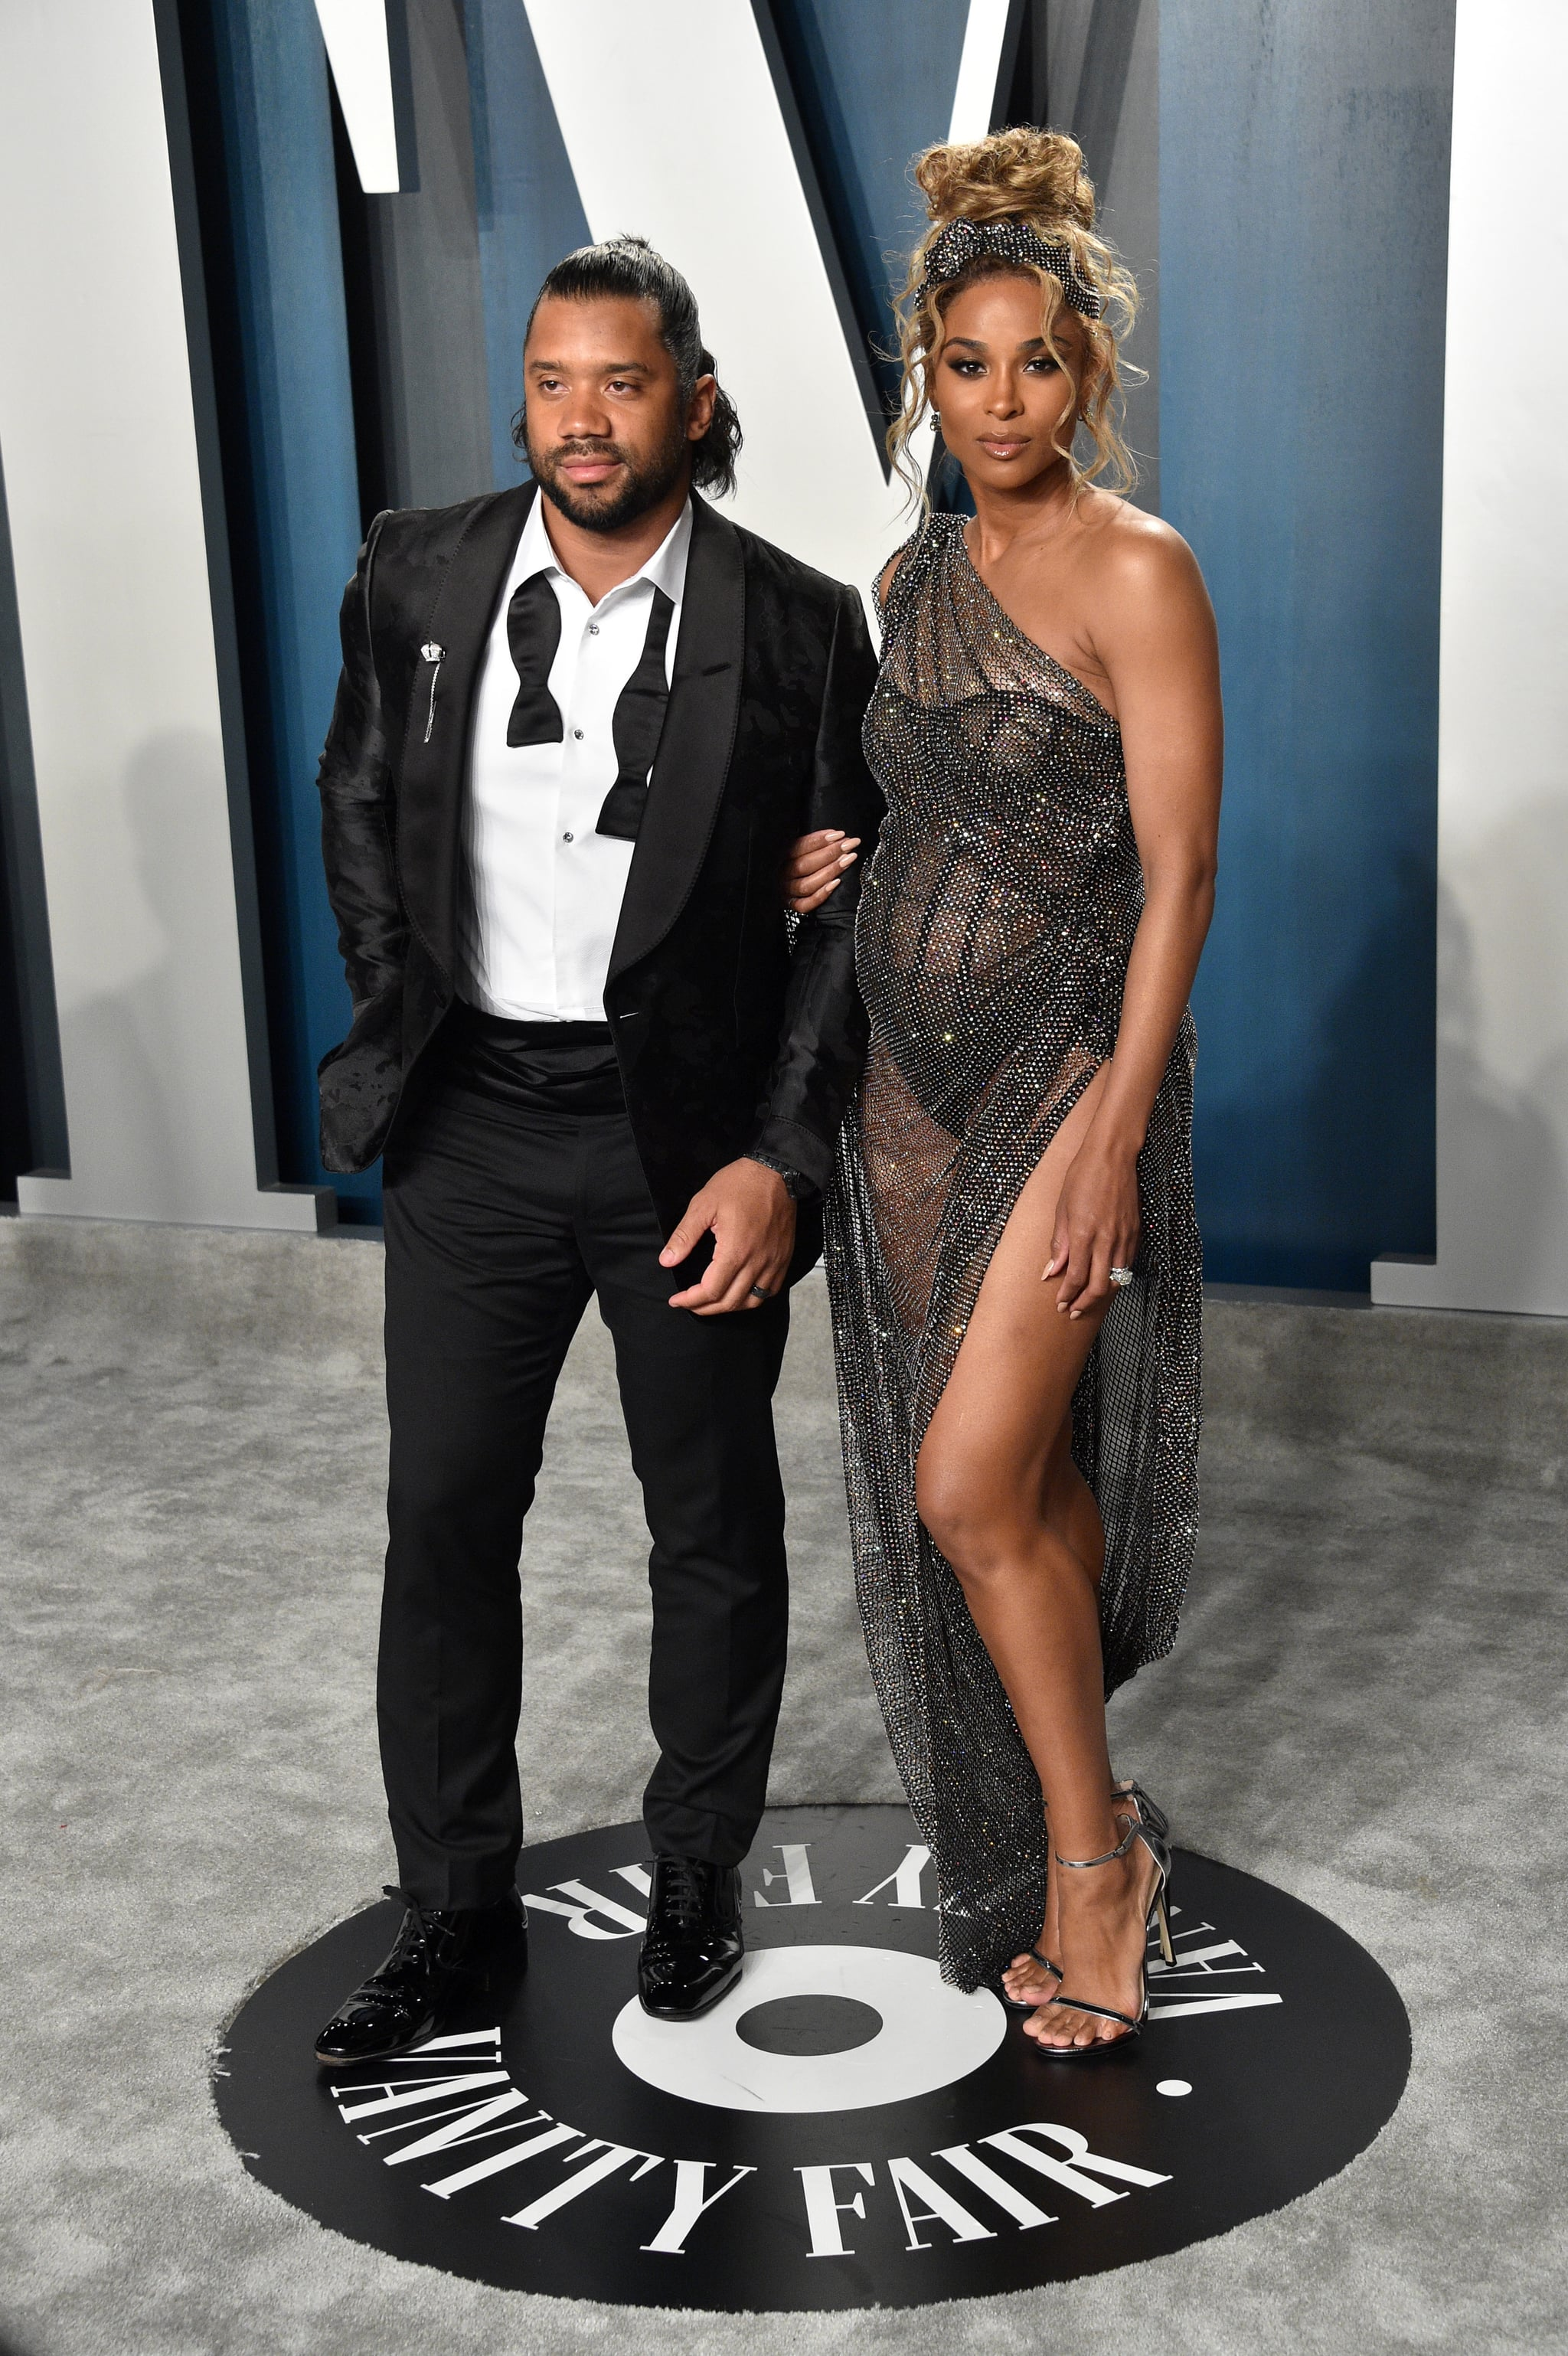 Image result for Ciara and Russell Wilson at oscars 2020